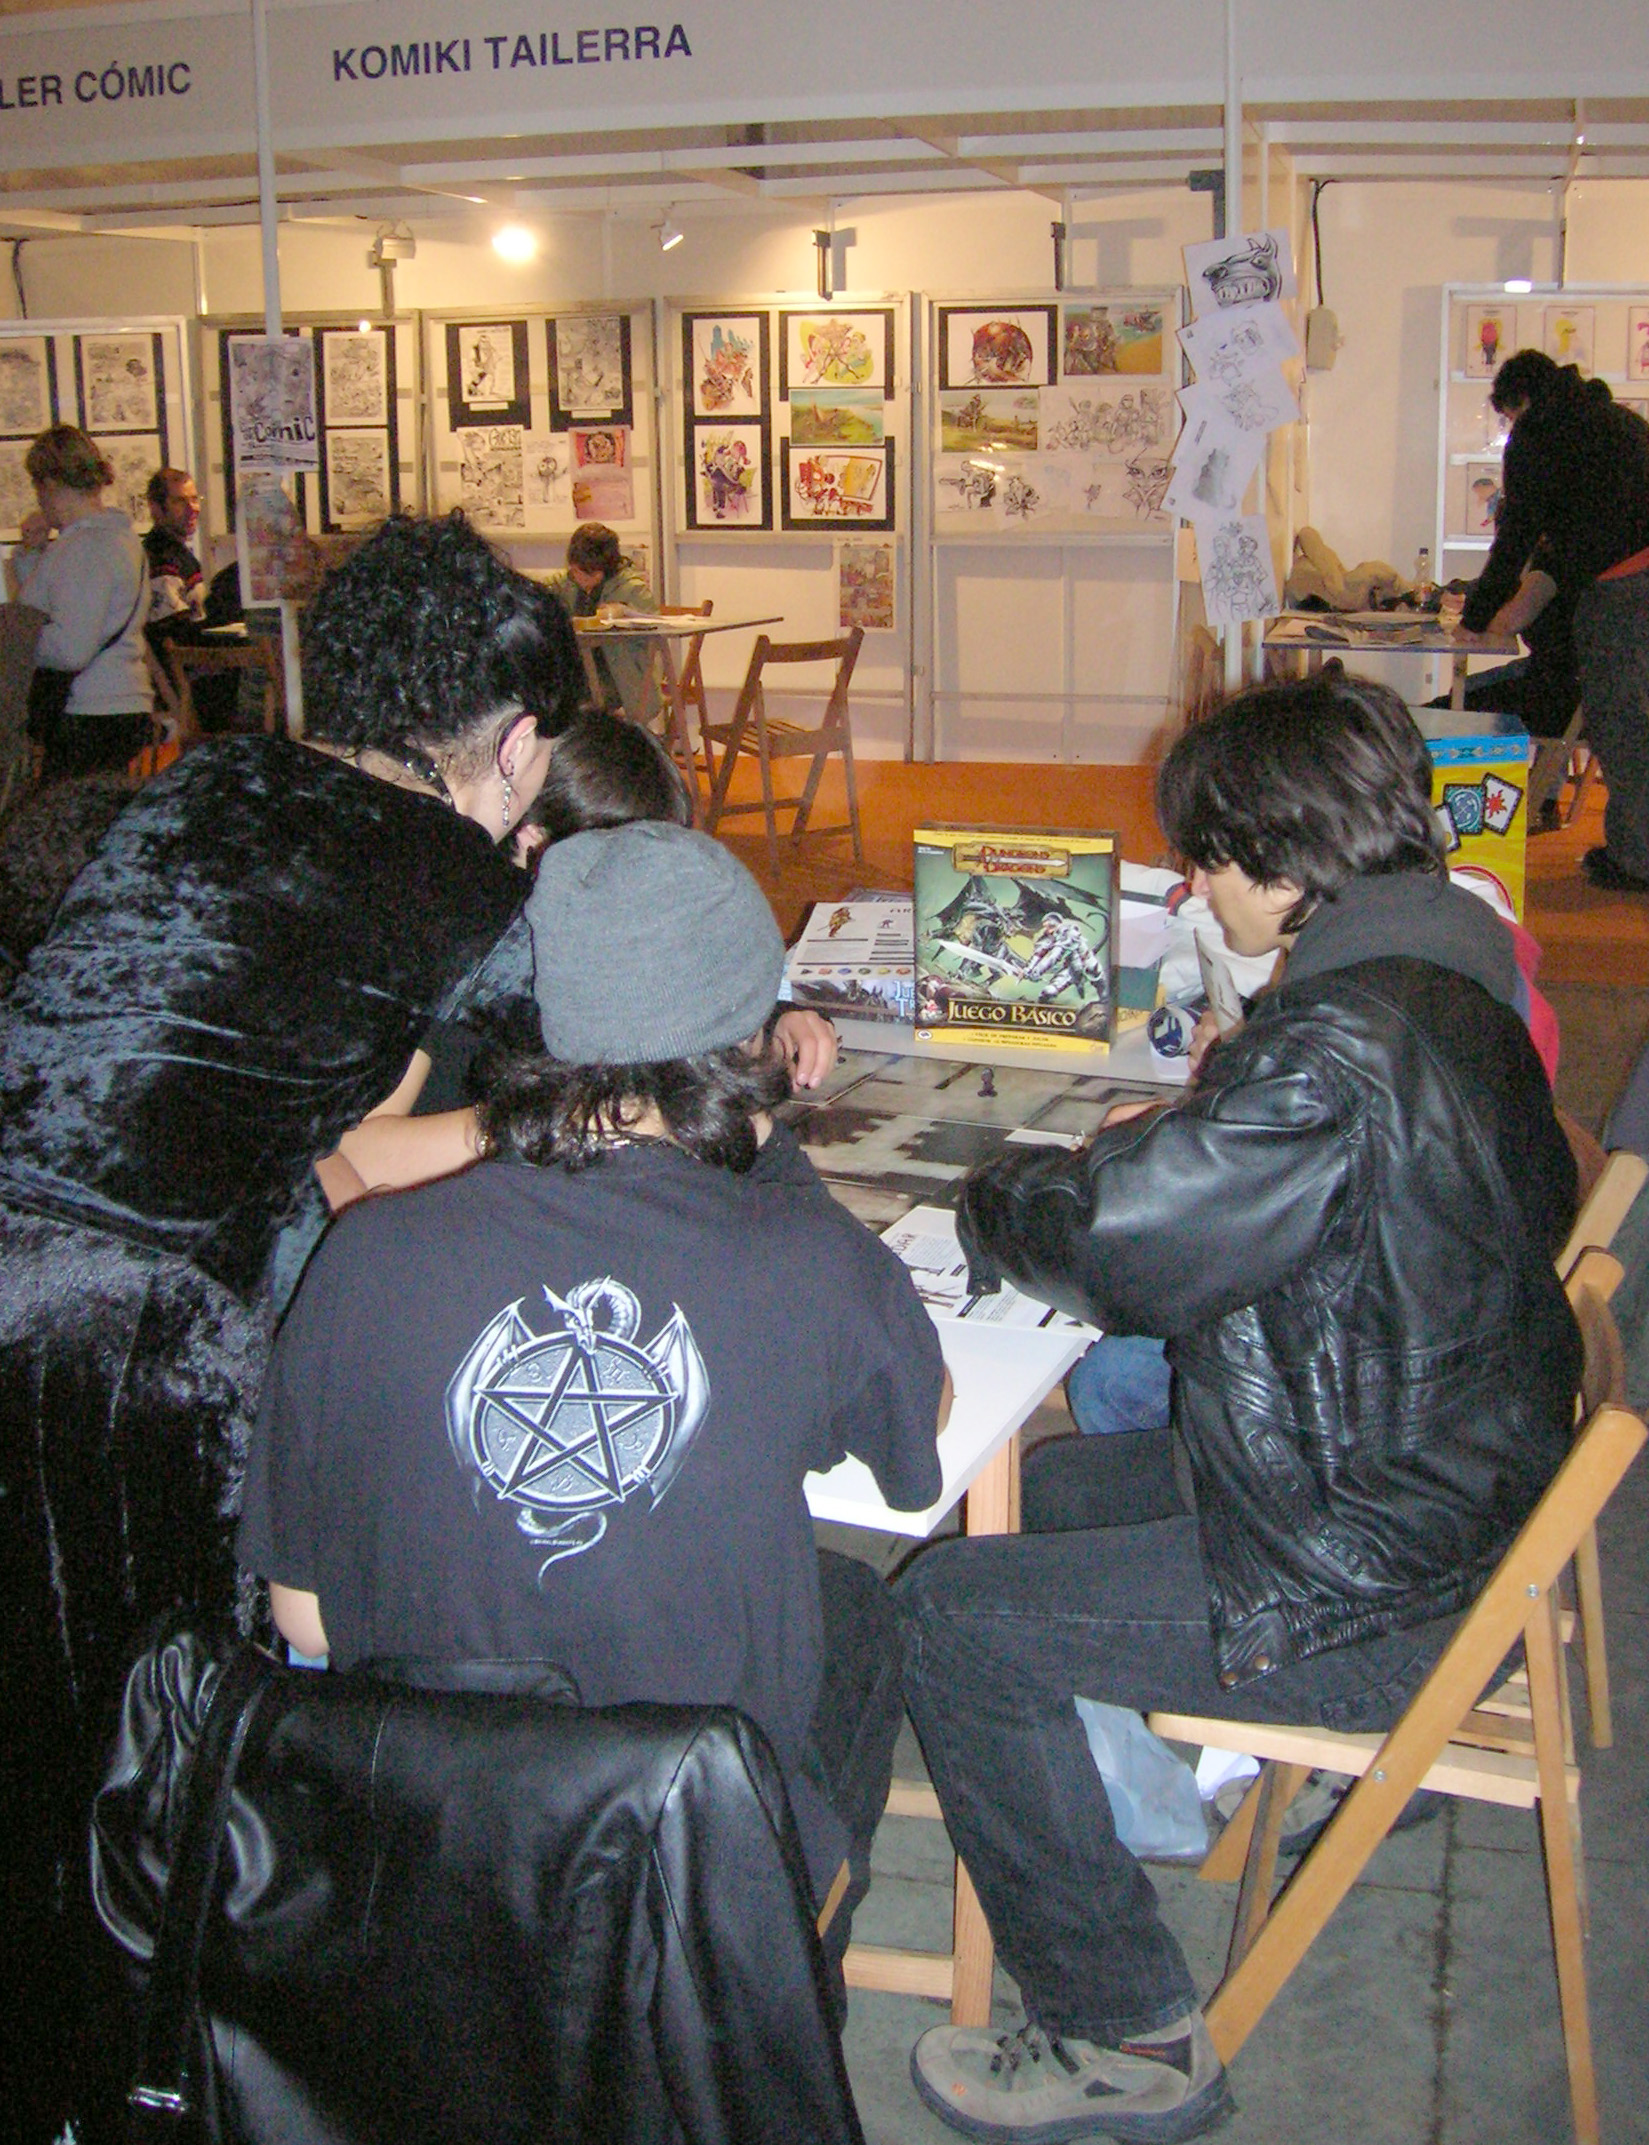 Dungeons & Dragons game in IV Getxo Comic Con.